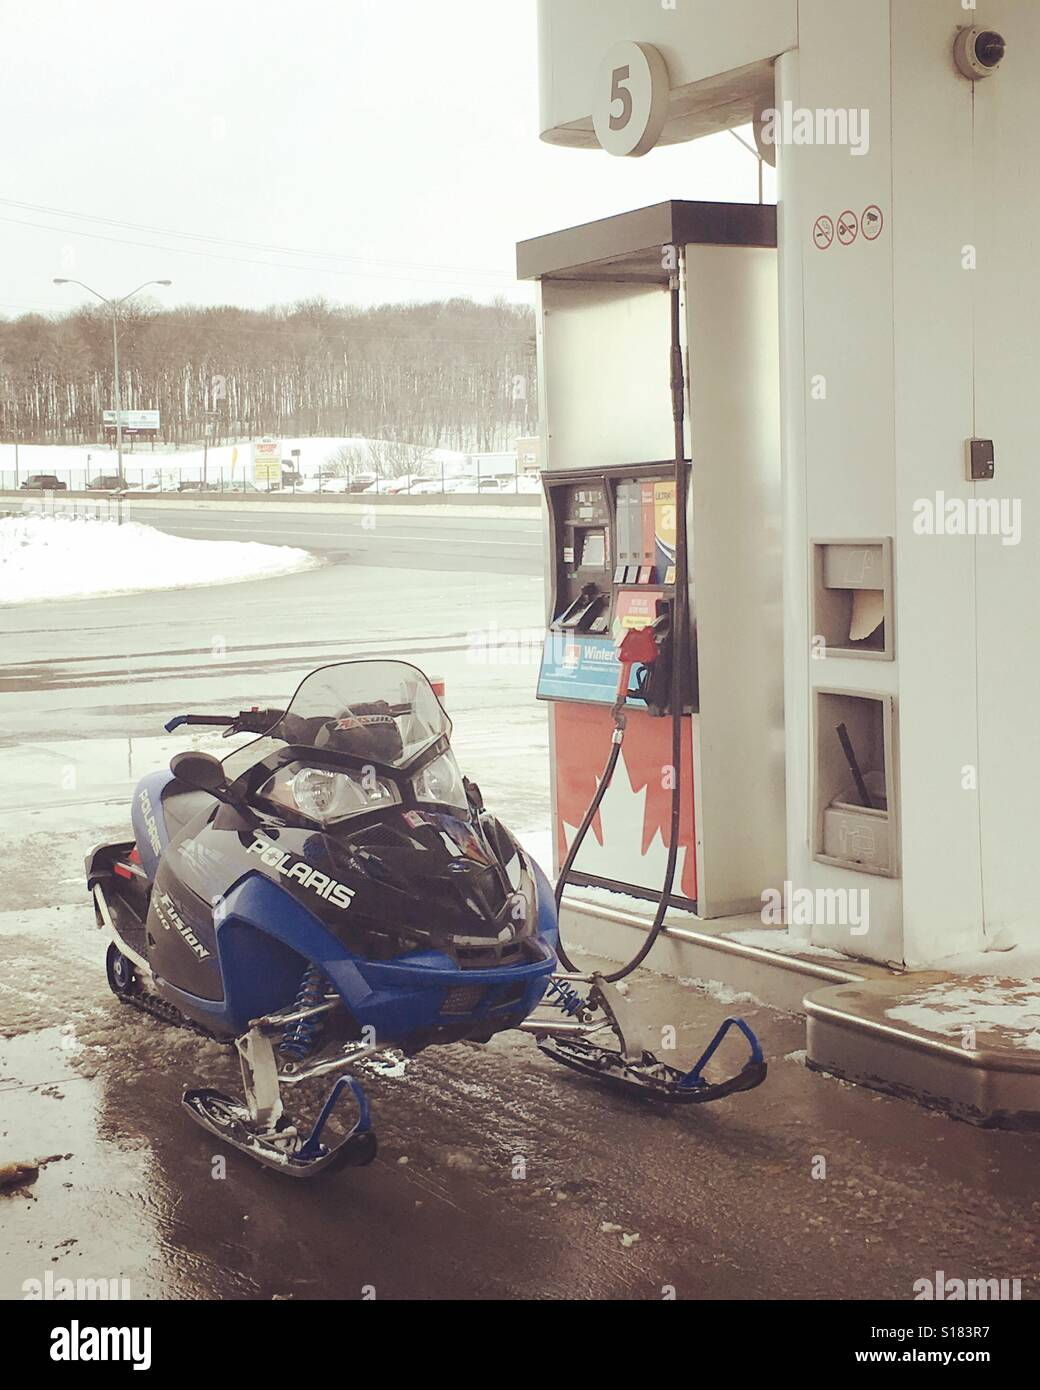 Snowmobile at at petrol station pump in Canada - Stock Image